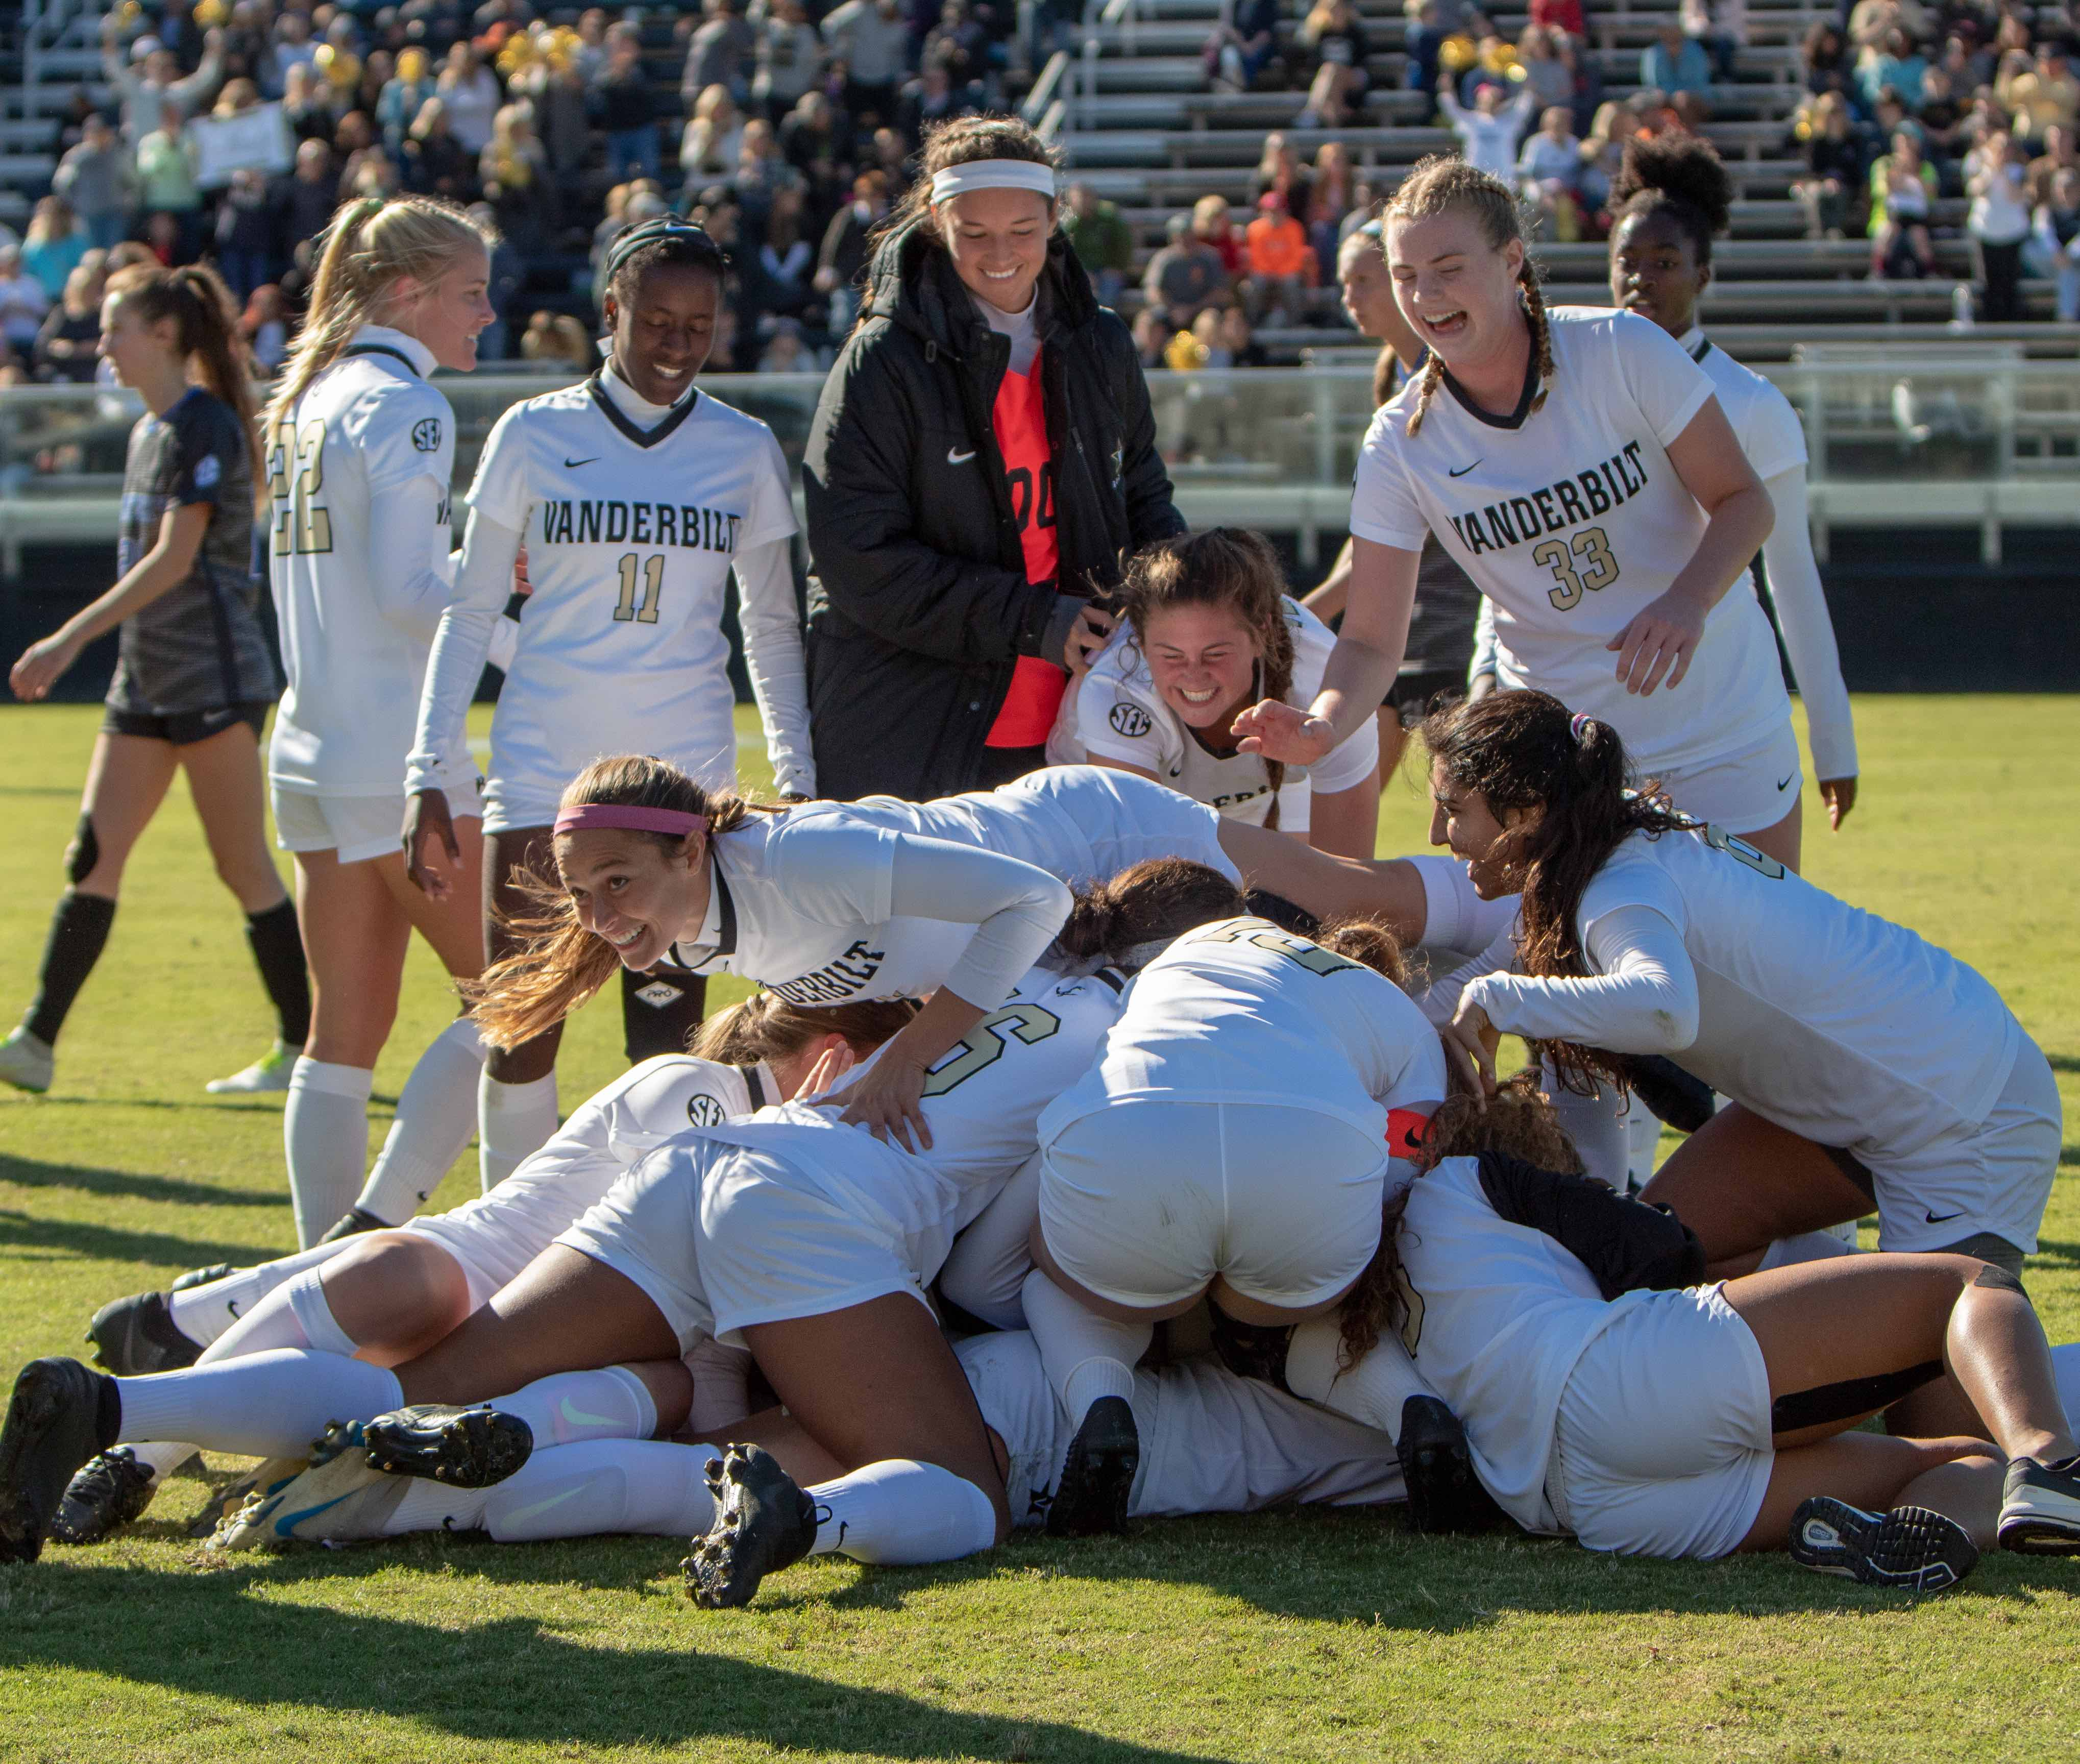 Vanderbilt Women's Soccer beats Kentucky to clinch the SEC. October 21, 2018. Photo by Madison Lindeman